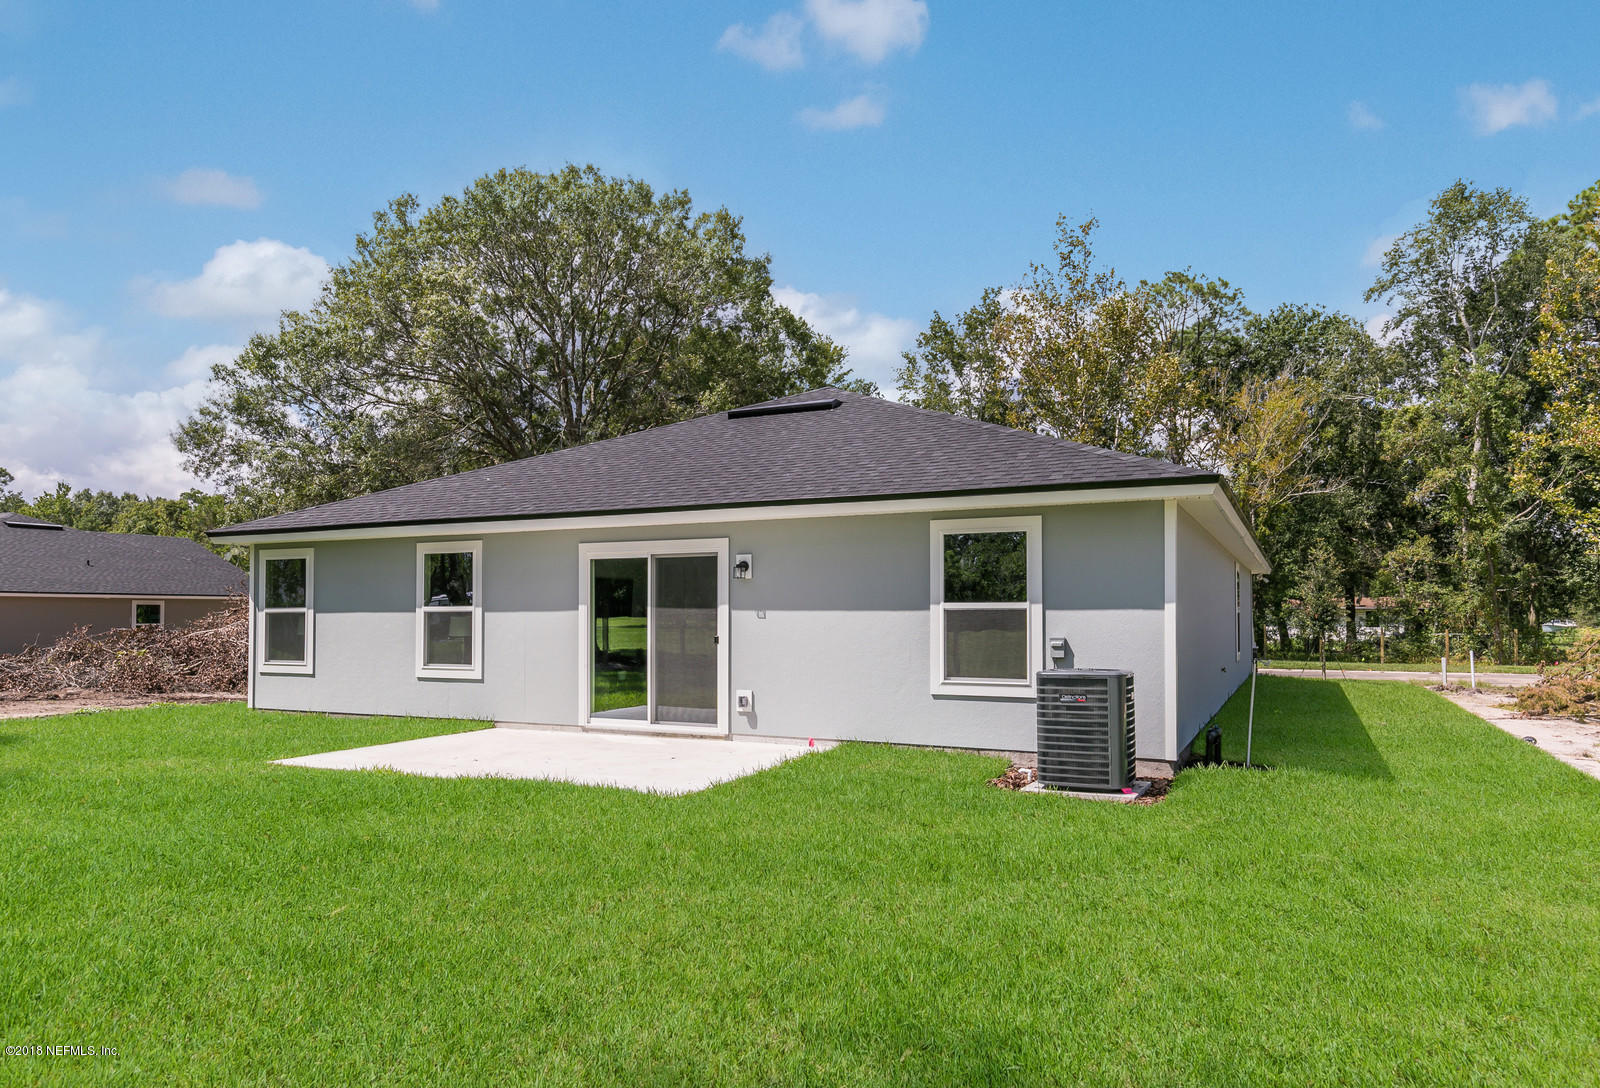 1211 SARAHS LANDING, JACKSONVILLE, FLORIDA 32221, 4 Bedrooms Bedrooms, ,2 BathroomsBathrooms,Residential - single family,For sale,SARAHS LANDING,947854